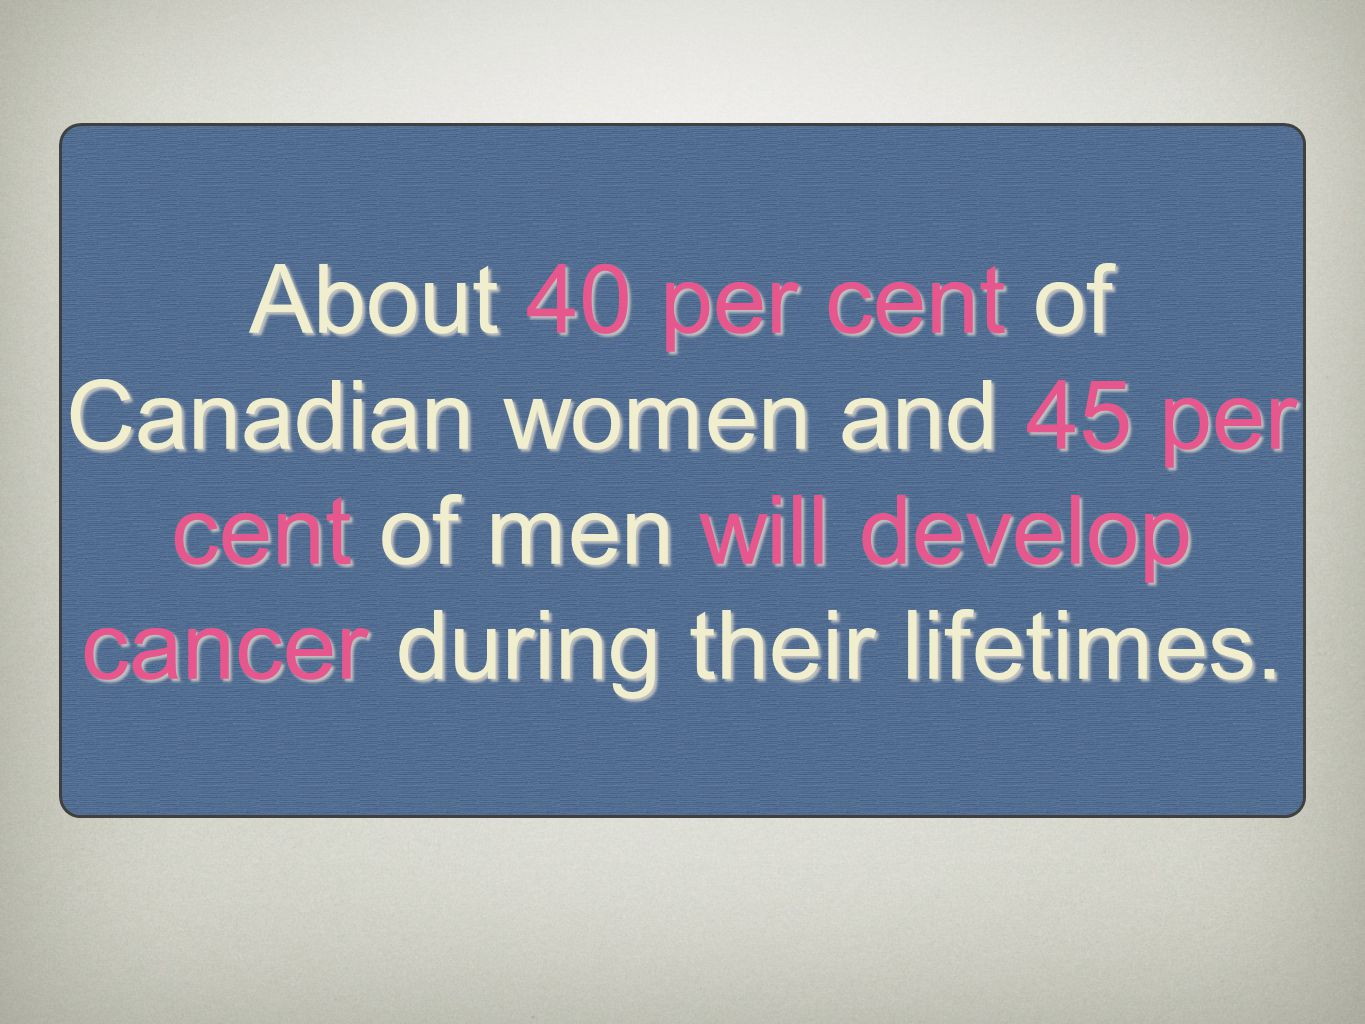 About 40 per cent of Canadian women and 45 per cent of men will develop cancer during their lifetimes.